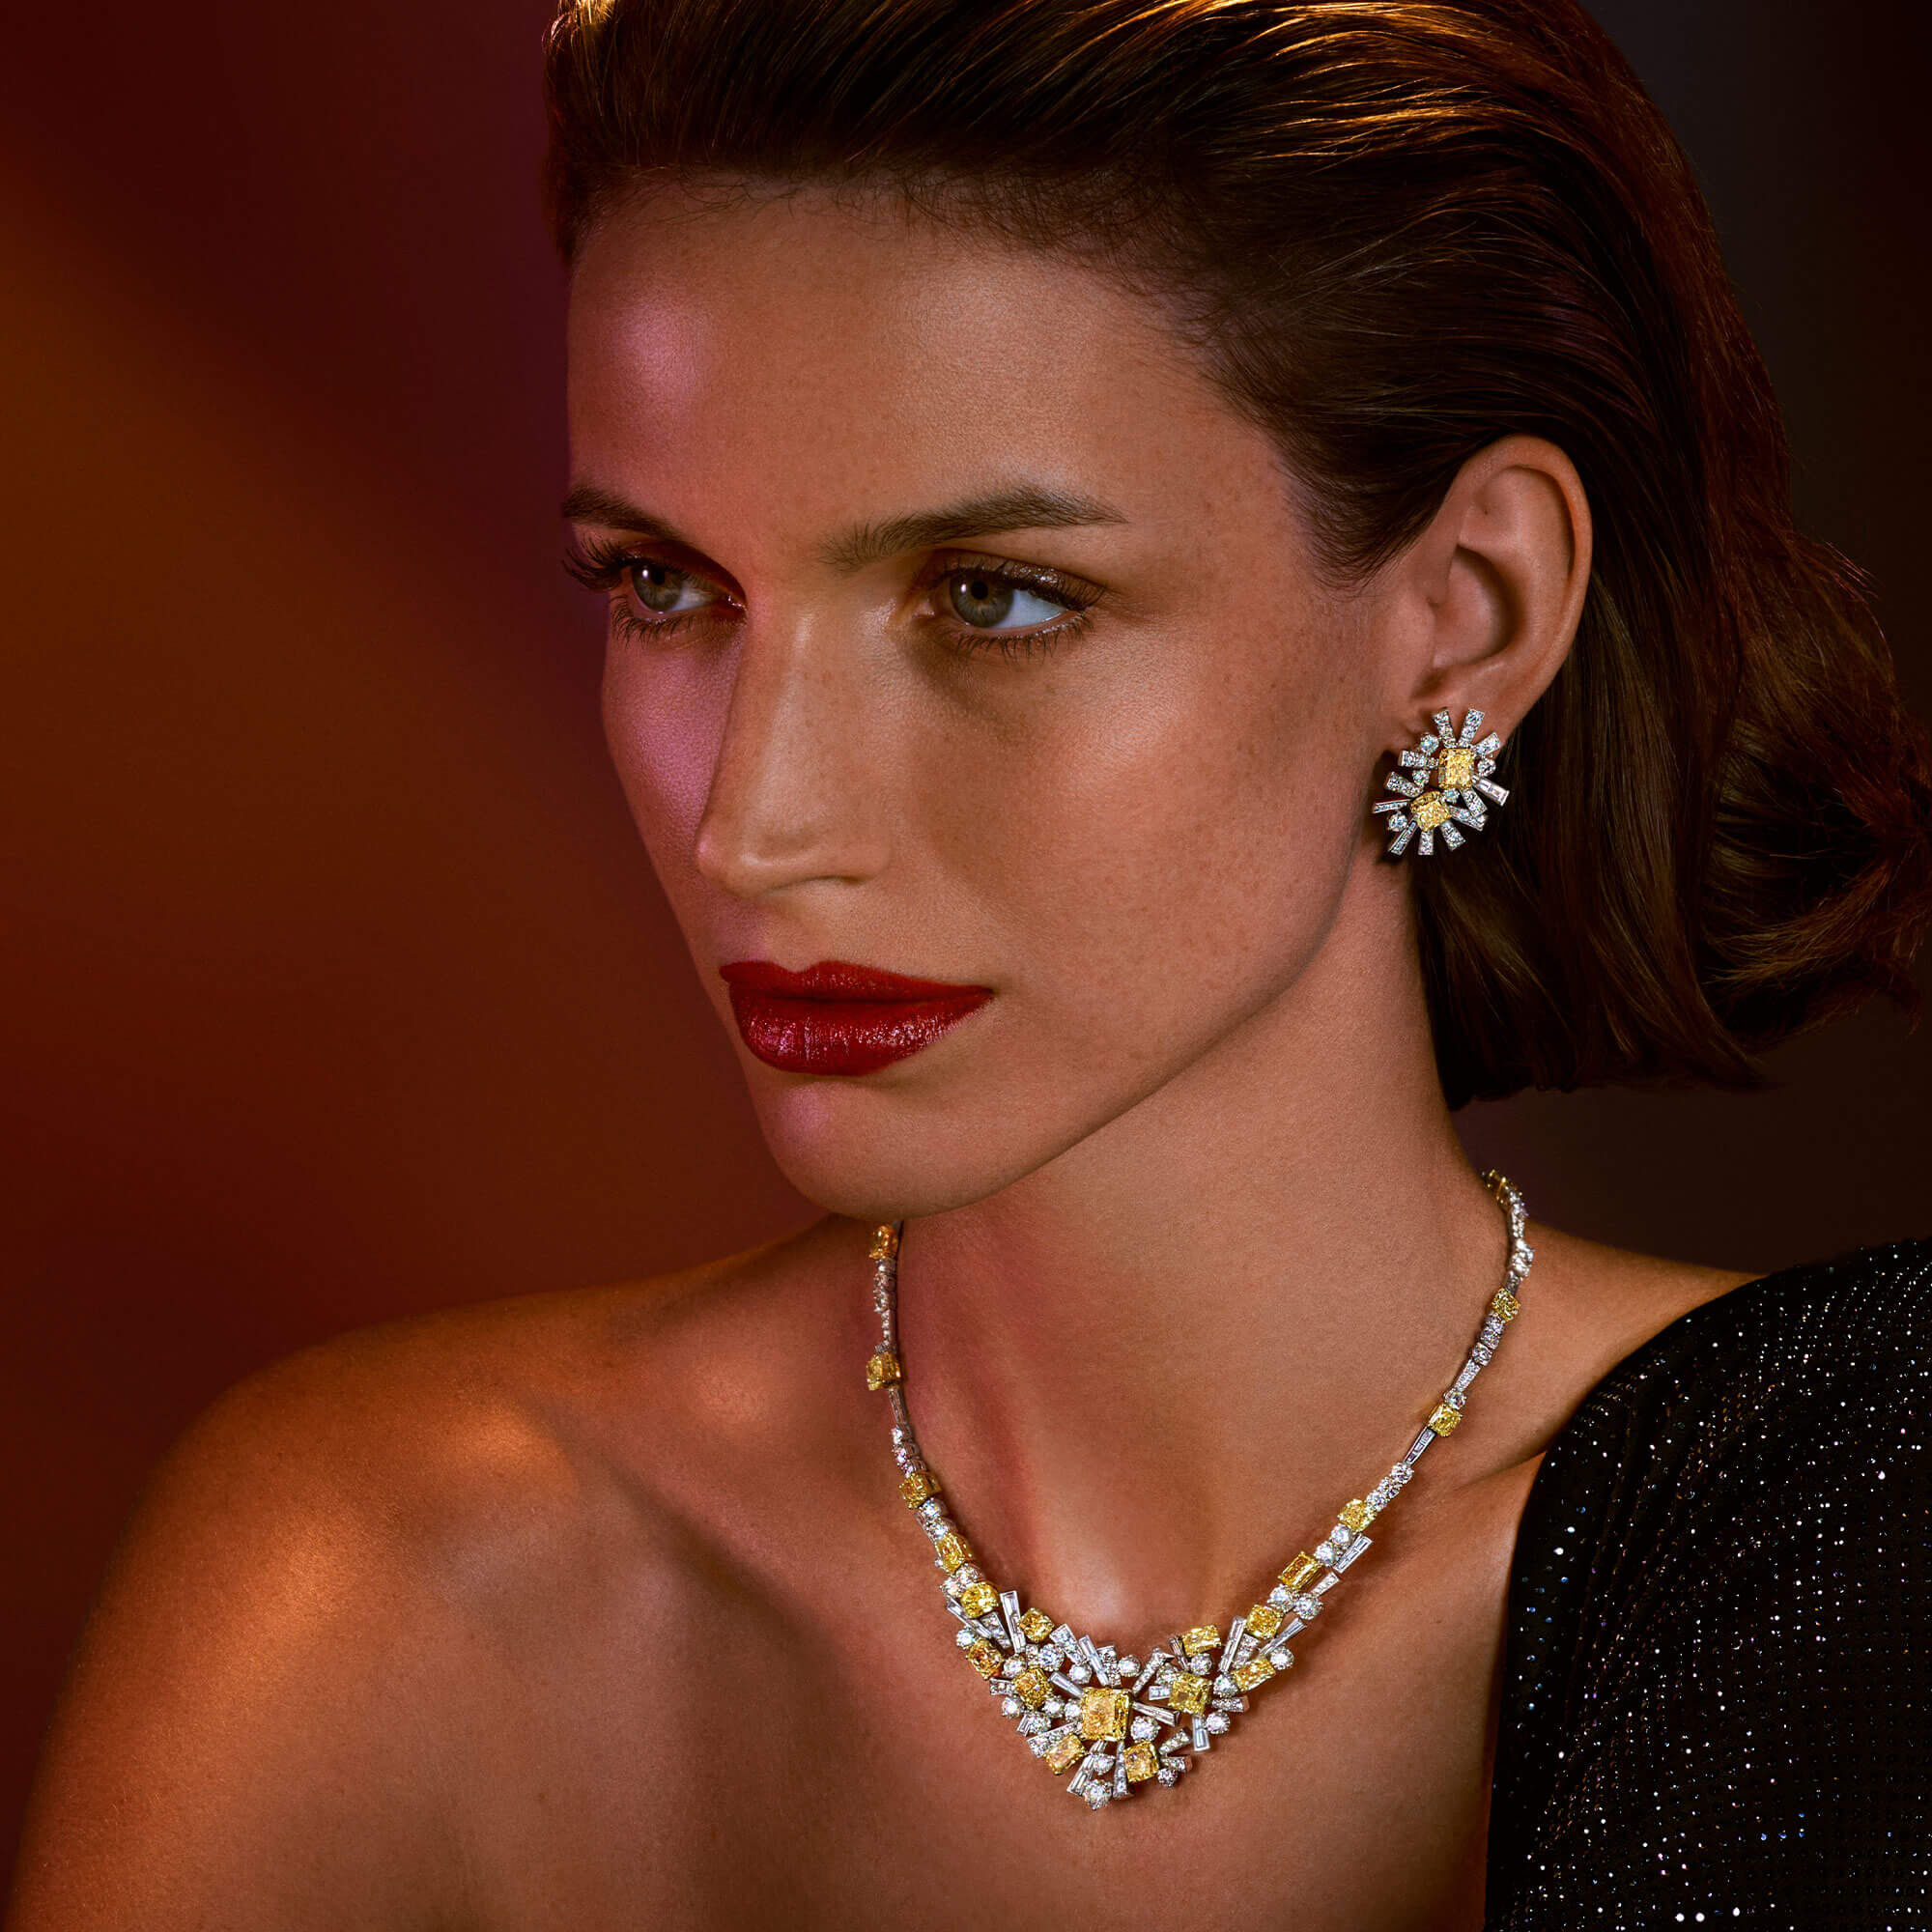 Graff high jewellery Fancy Yellow and white diamond Threads necklace and earrings worn by model